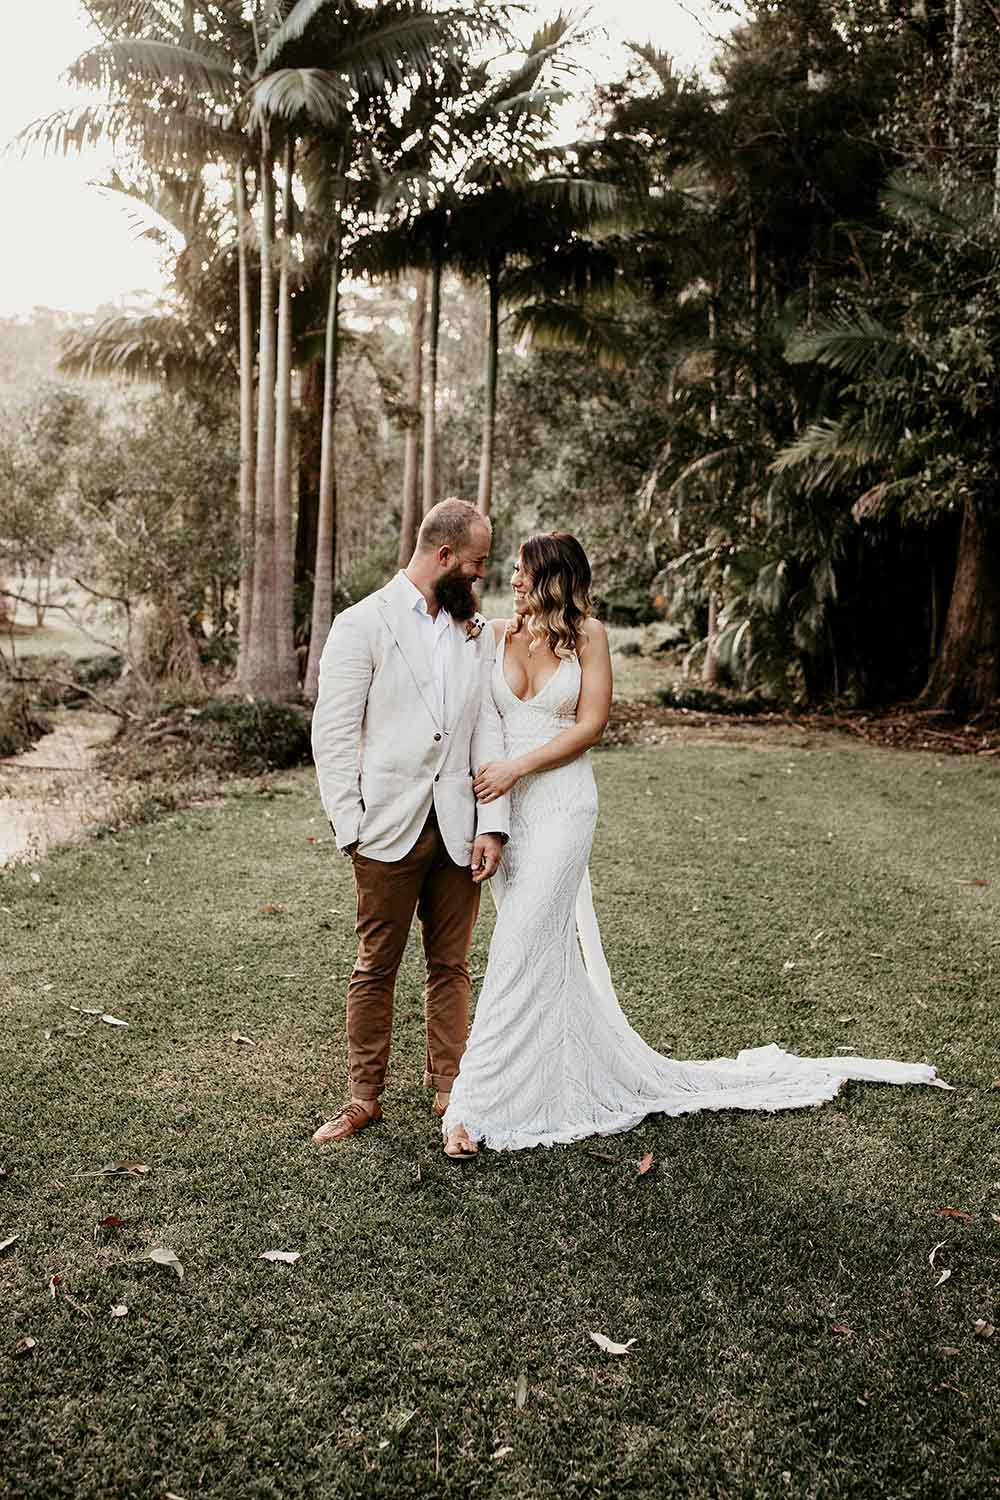 Bride and groom standing close holding each other looking at each other laughing - wedding photography - bellingen wedding photographer -nambucca valley wedding photographer - wedding dress- coffs coast wedding photographer